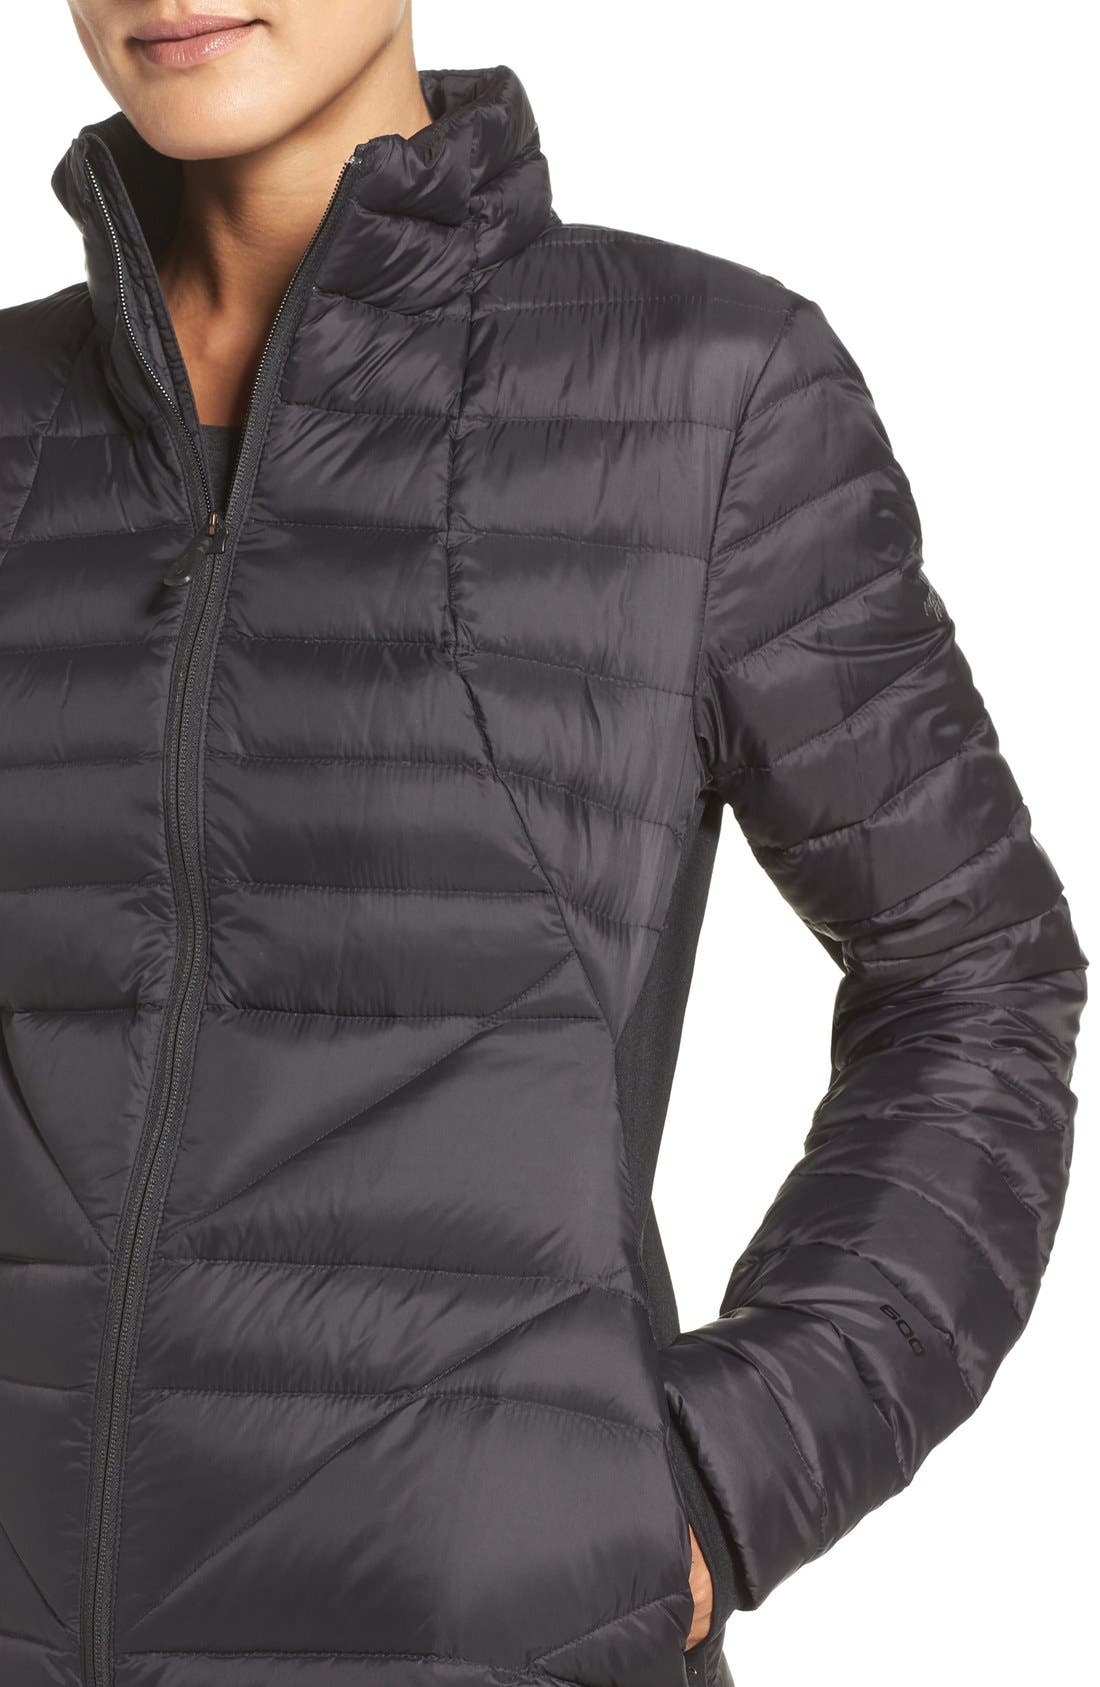 THE NORTH FACE,                             Lucia Hybrid Down Jacket,                             Alternate thumbnail 4, color,                             001